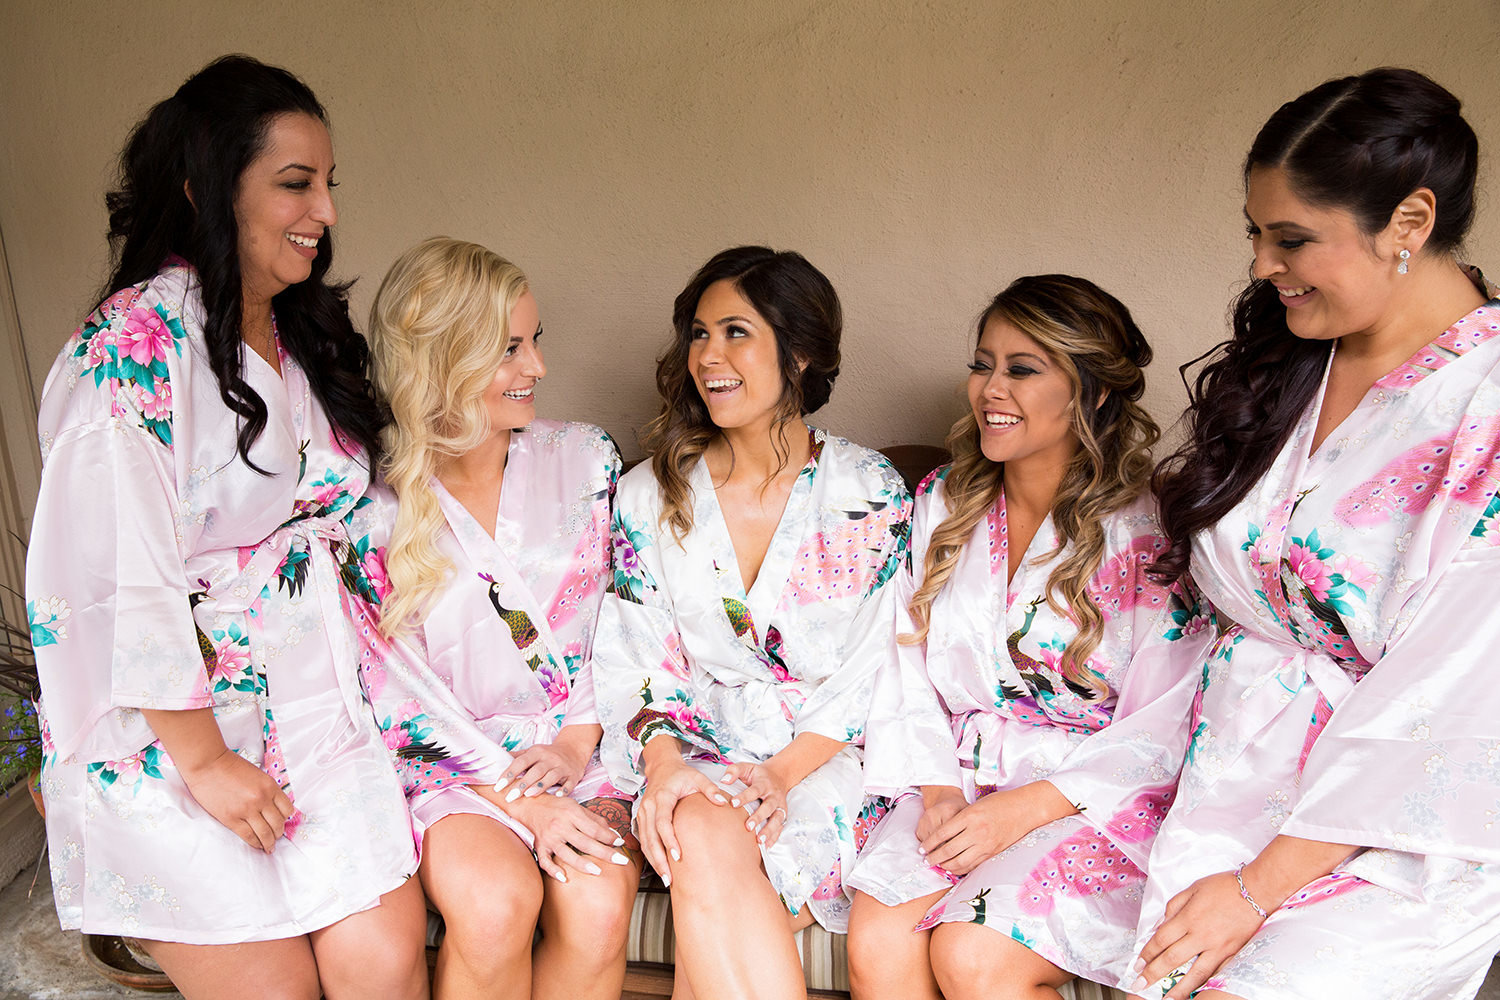 Cute candid moment with the bridesmaids in robes